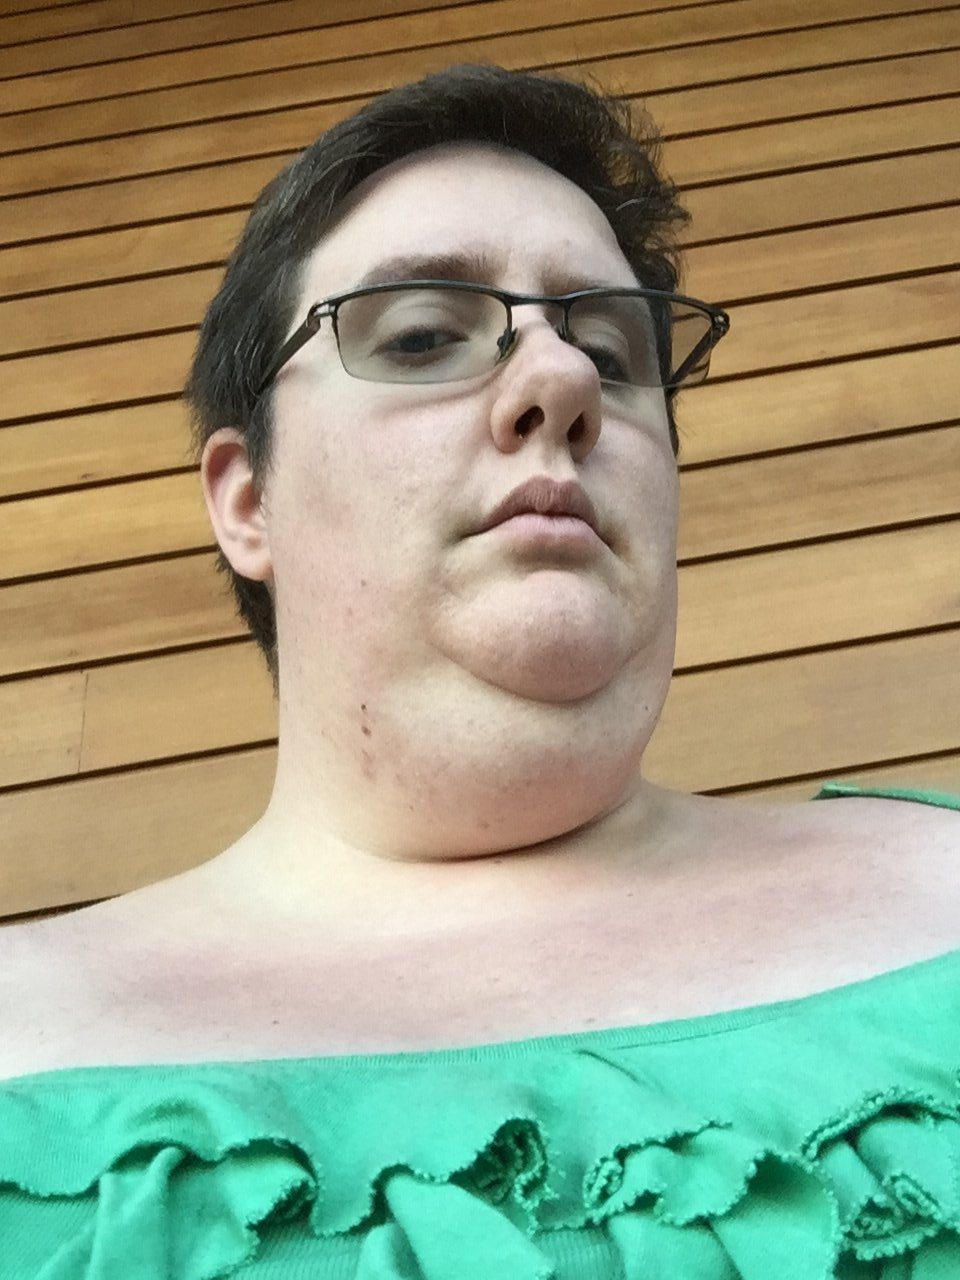 upward angle of a short -haired, fat white person with a green ruffle-y top